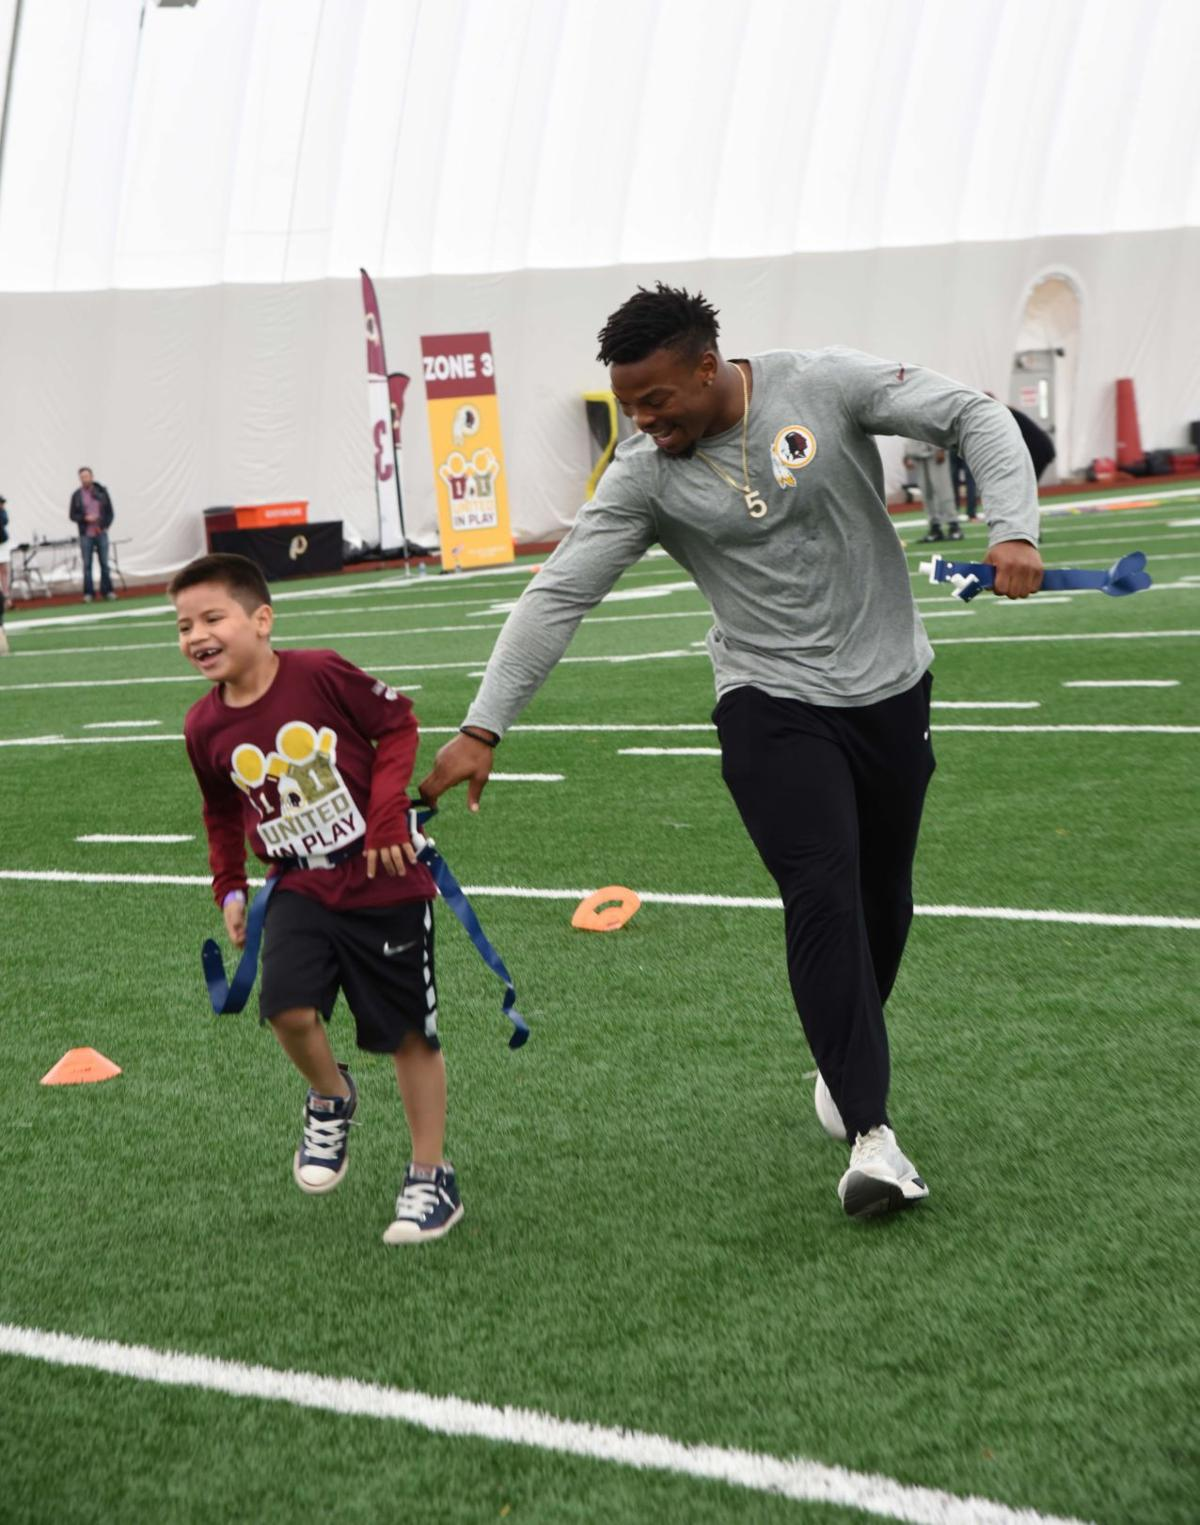 Kids of Fallen Service Members, ÔUnited in PlayÕ with Washington Redskins Charitable Foundation and Yellow Ribbons United for fun Armed Forces Day